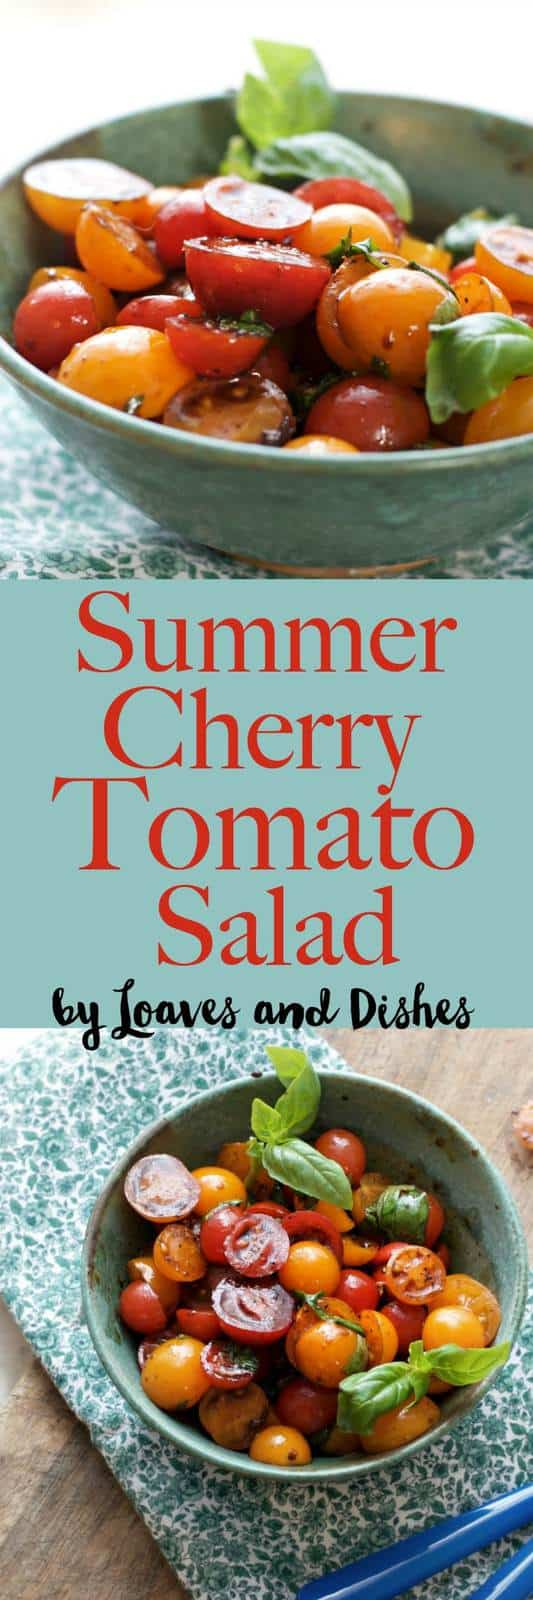 A healthy marinated summer salad using tomatoes, herbs and balsamic. You can add ingredients as you like - such as feta, goat cheese, black beans, cucumber, mozzarella. Similar to a Pioneer Woman dish. Wonderful!